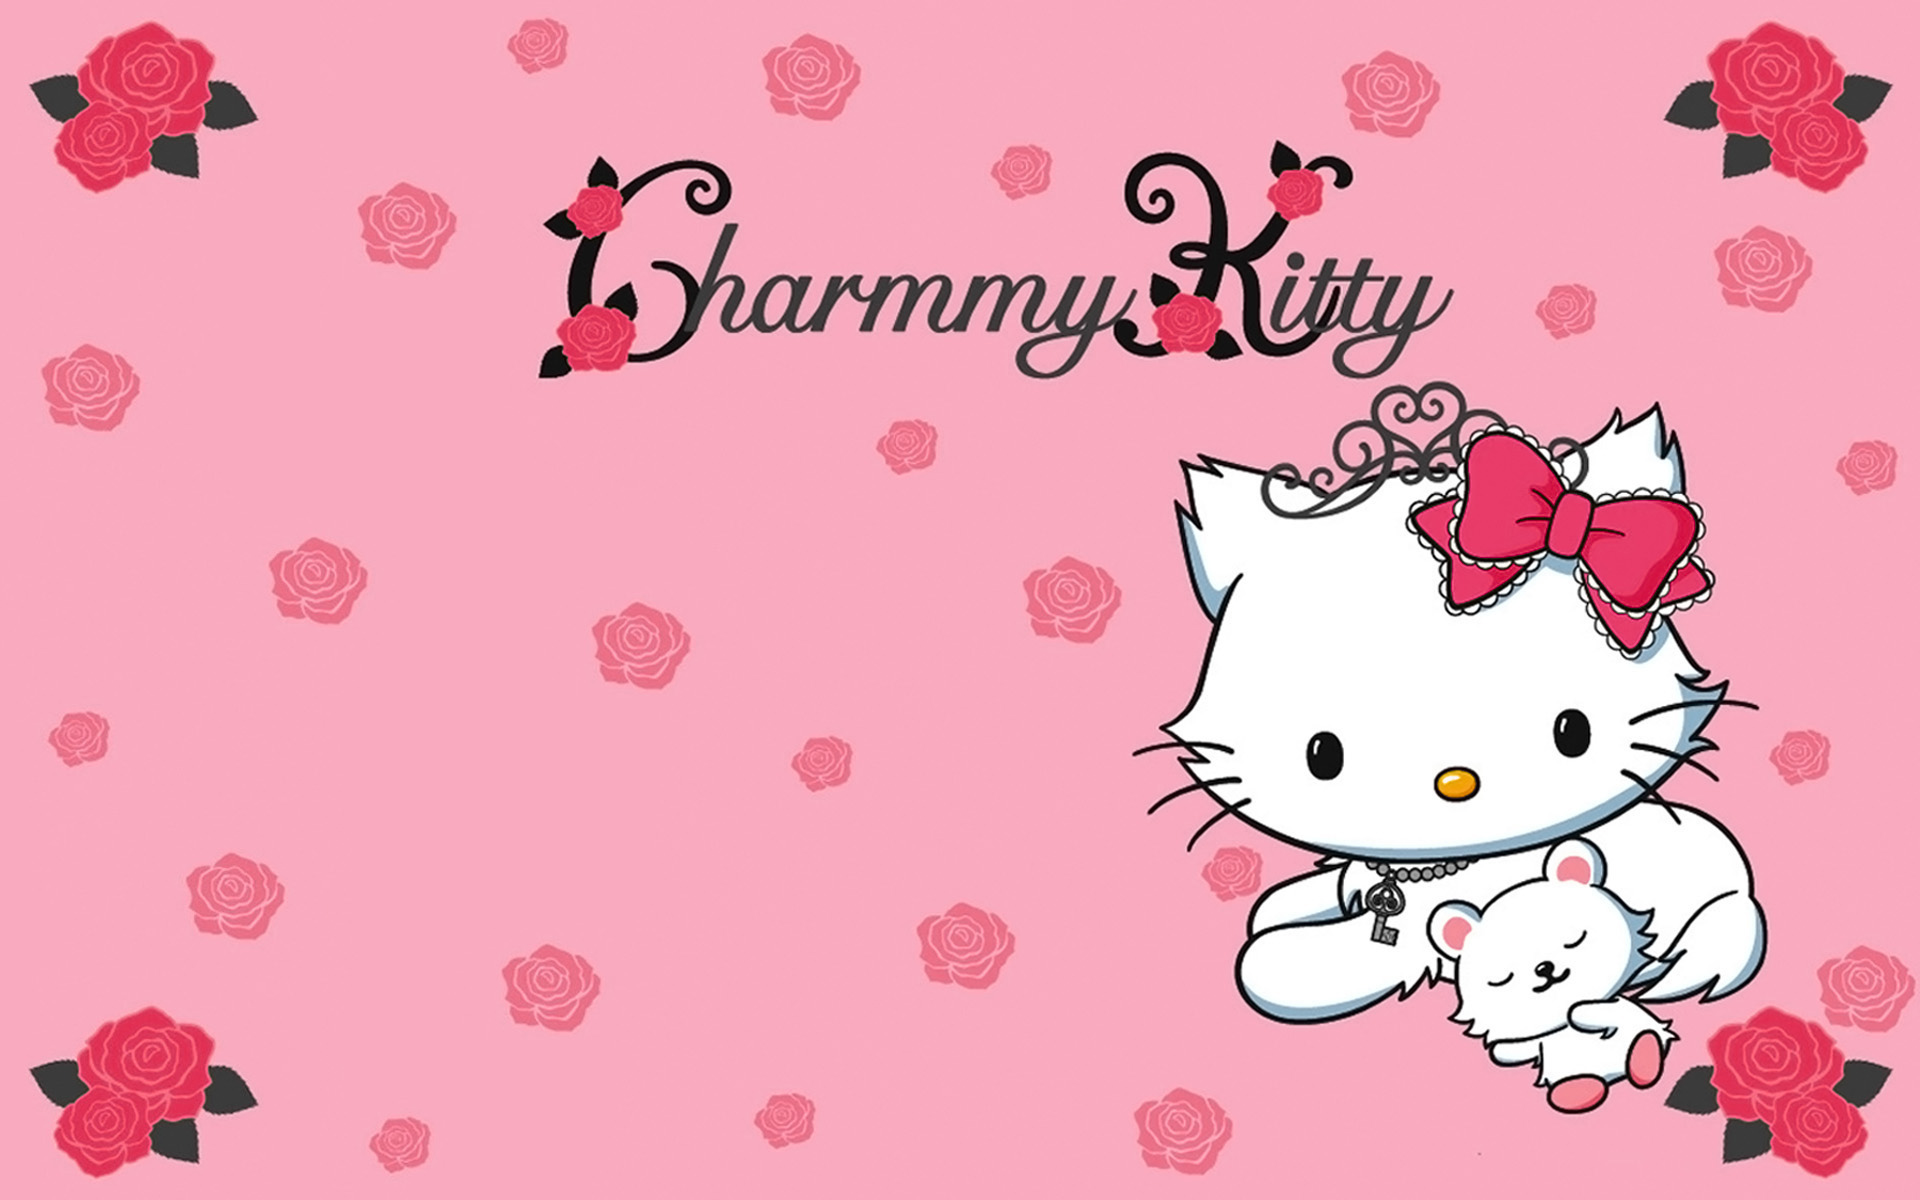 Top Wallpaper Hello Kitty Facebook - charmmy-kitty-roses-1920x1200  Pic_37869.jpg